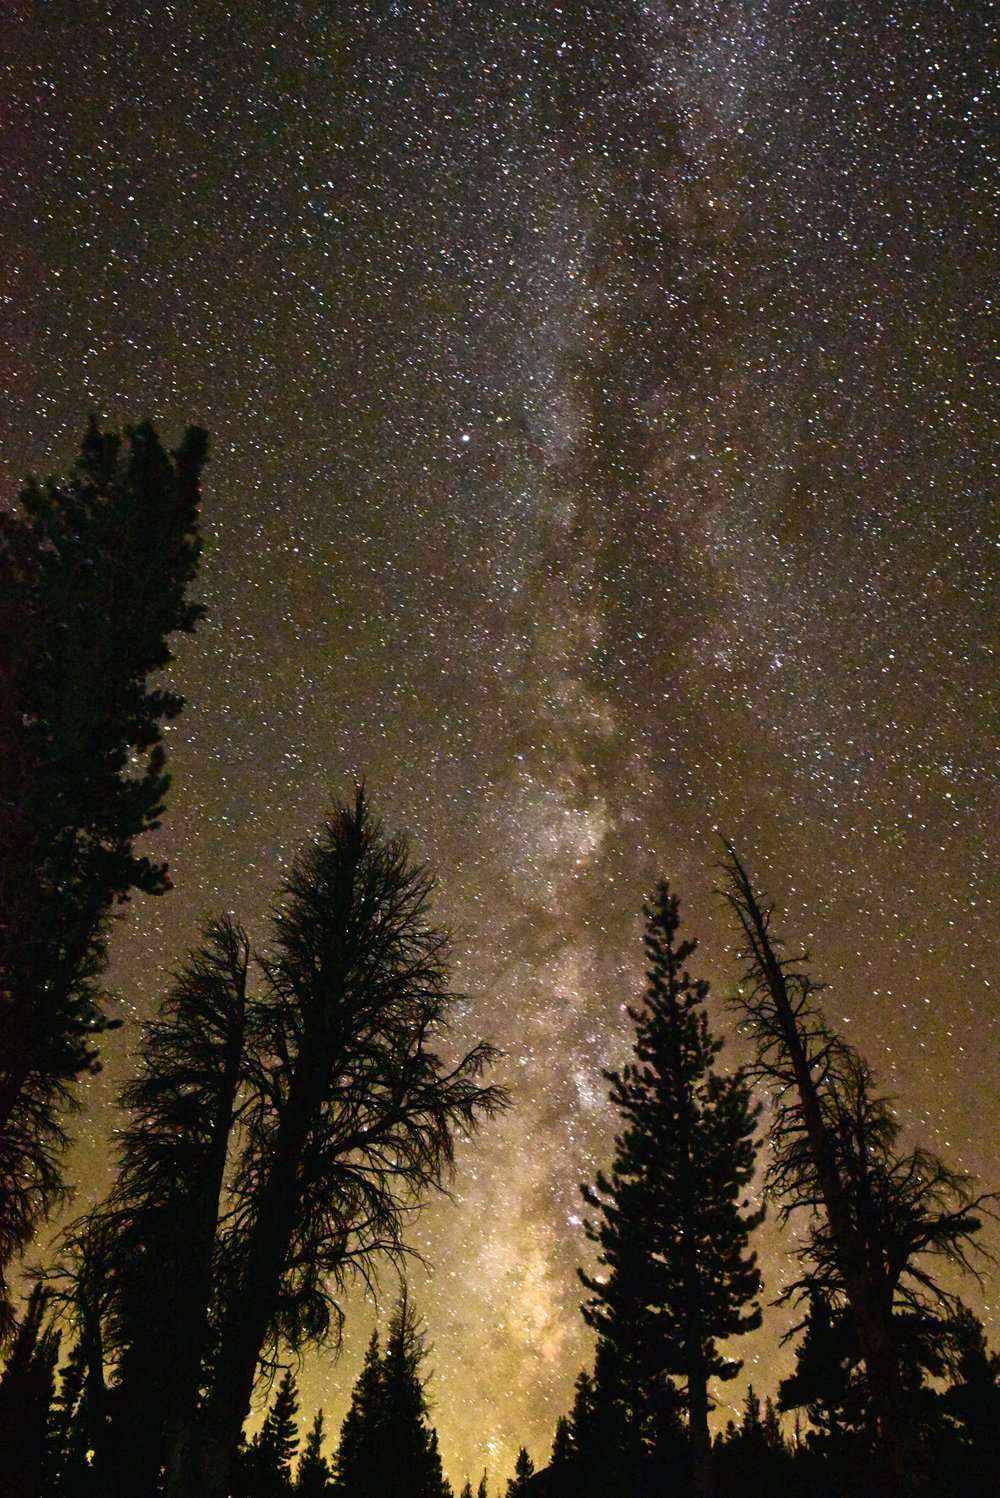 Milky Way shining down over our campsite at Emeric Lake